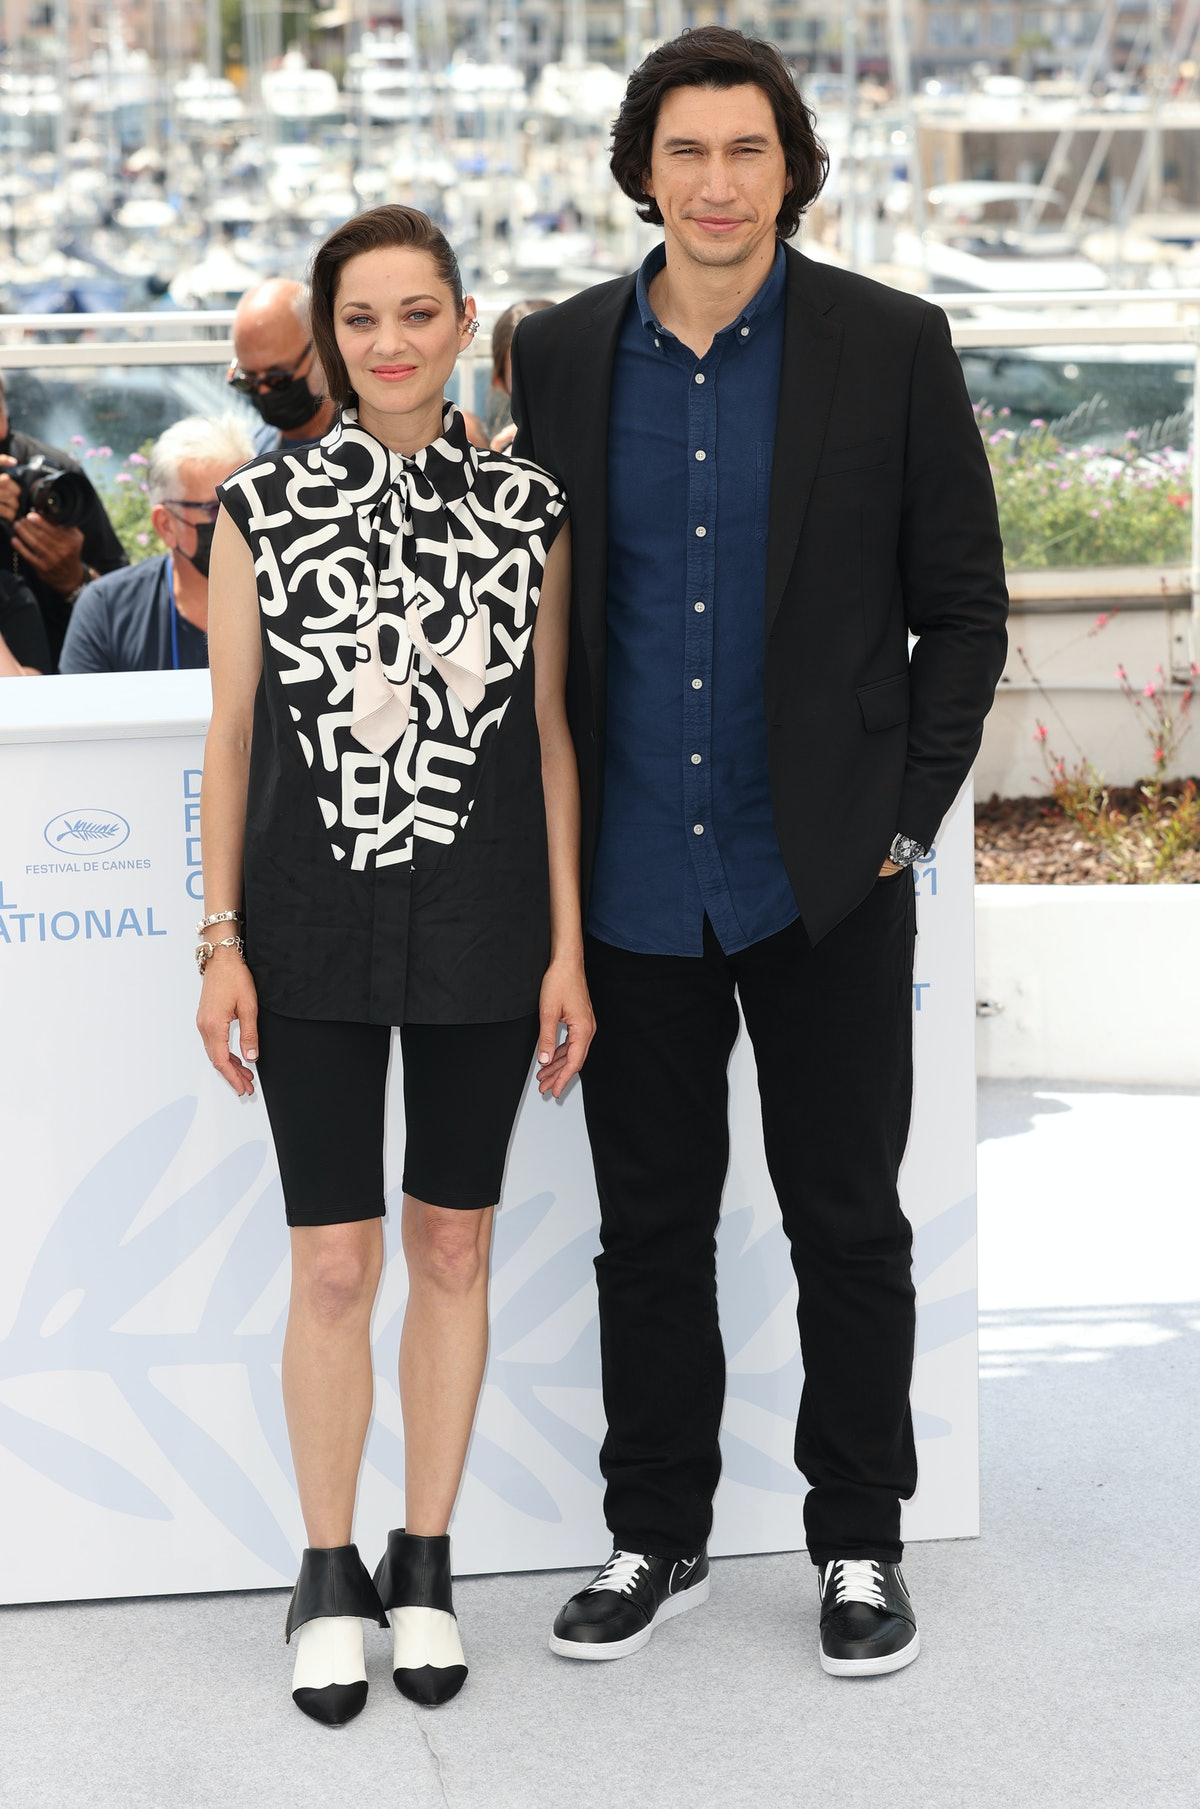 """CANNES, FRANCE - JULY 06: Marion Cotillard and Adam Driver attend the """"Annette"""" photocall during the 74th annual Cannes Film Festival on July 06, 2021 in Cannes, France. (Photo by Mike Marsland/WireImage)"""